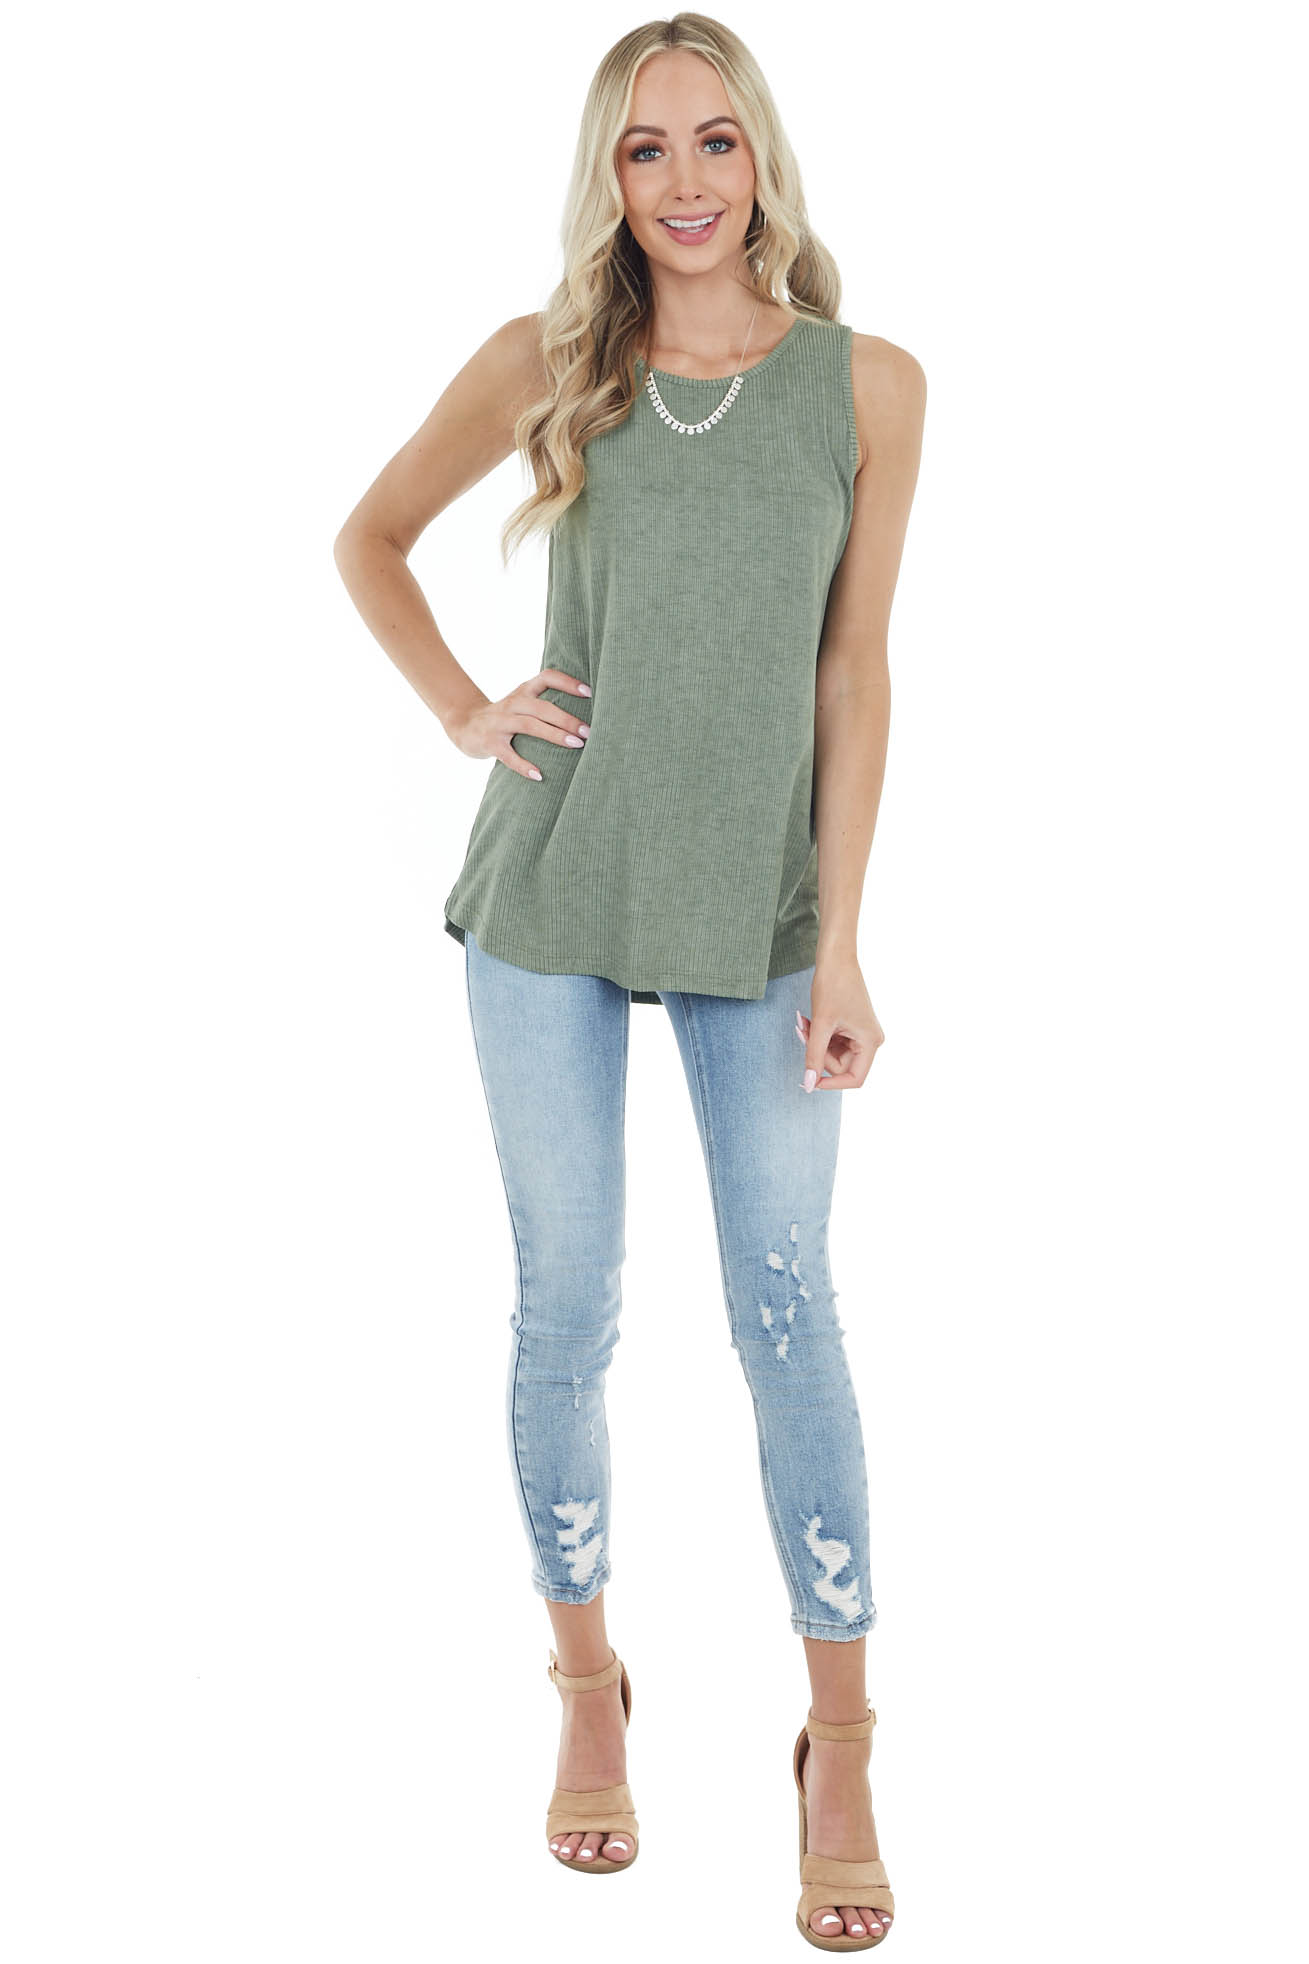 Olive Lightweight Sleeveless Stretchy Ribbed Knit Top